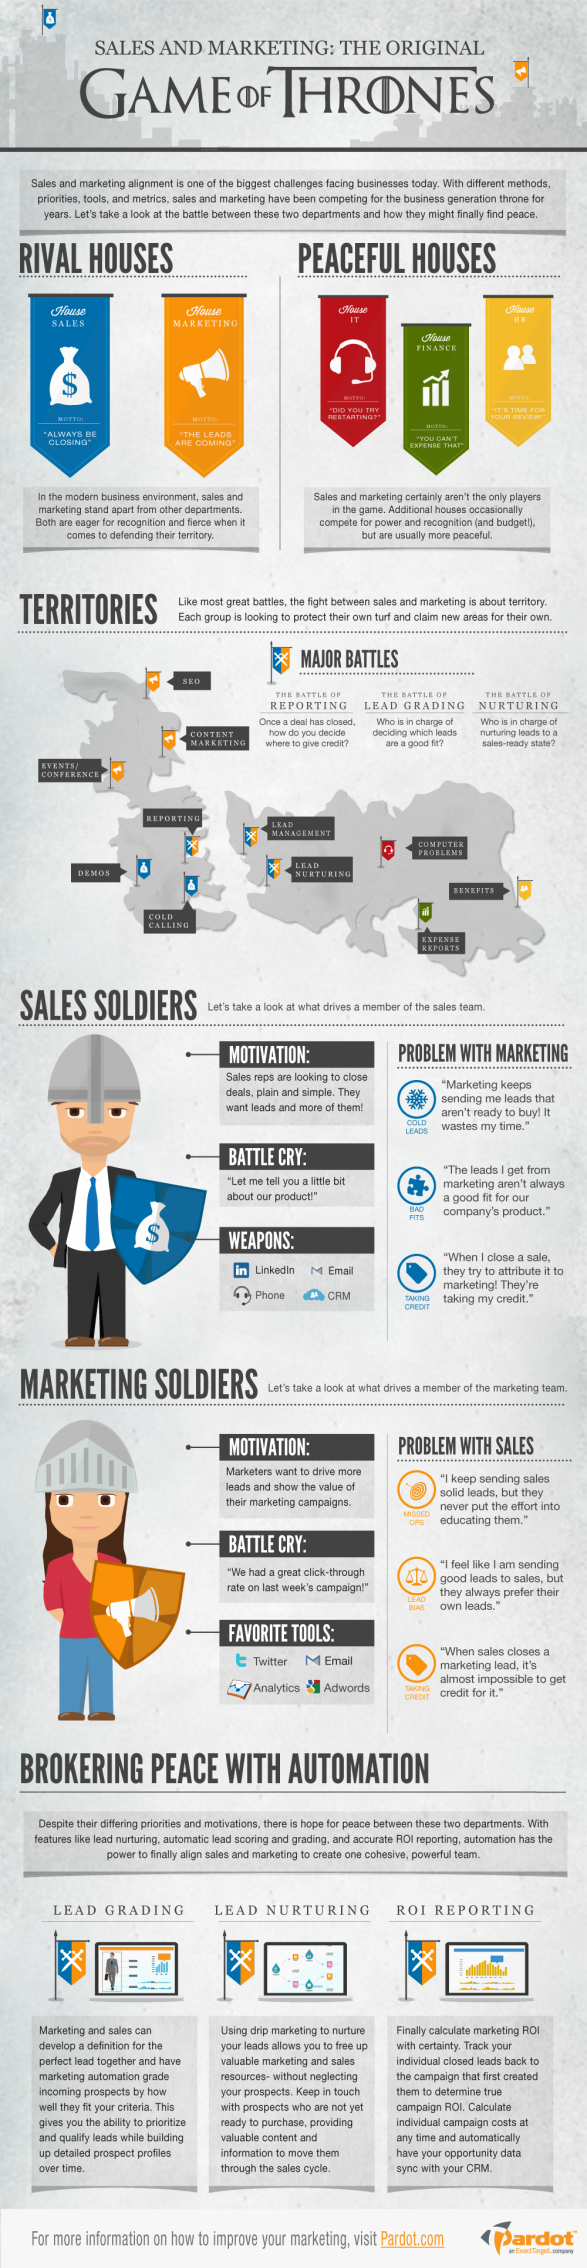 Sales vs. Marketing: The Original Game of Thrones